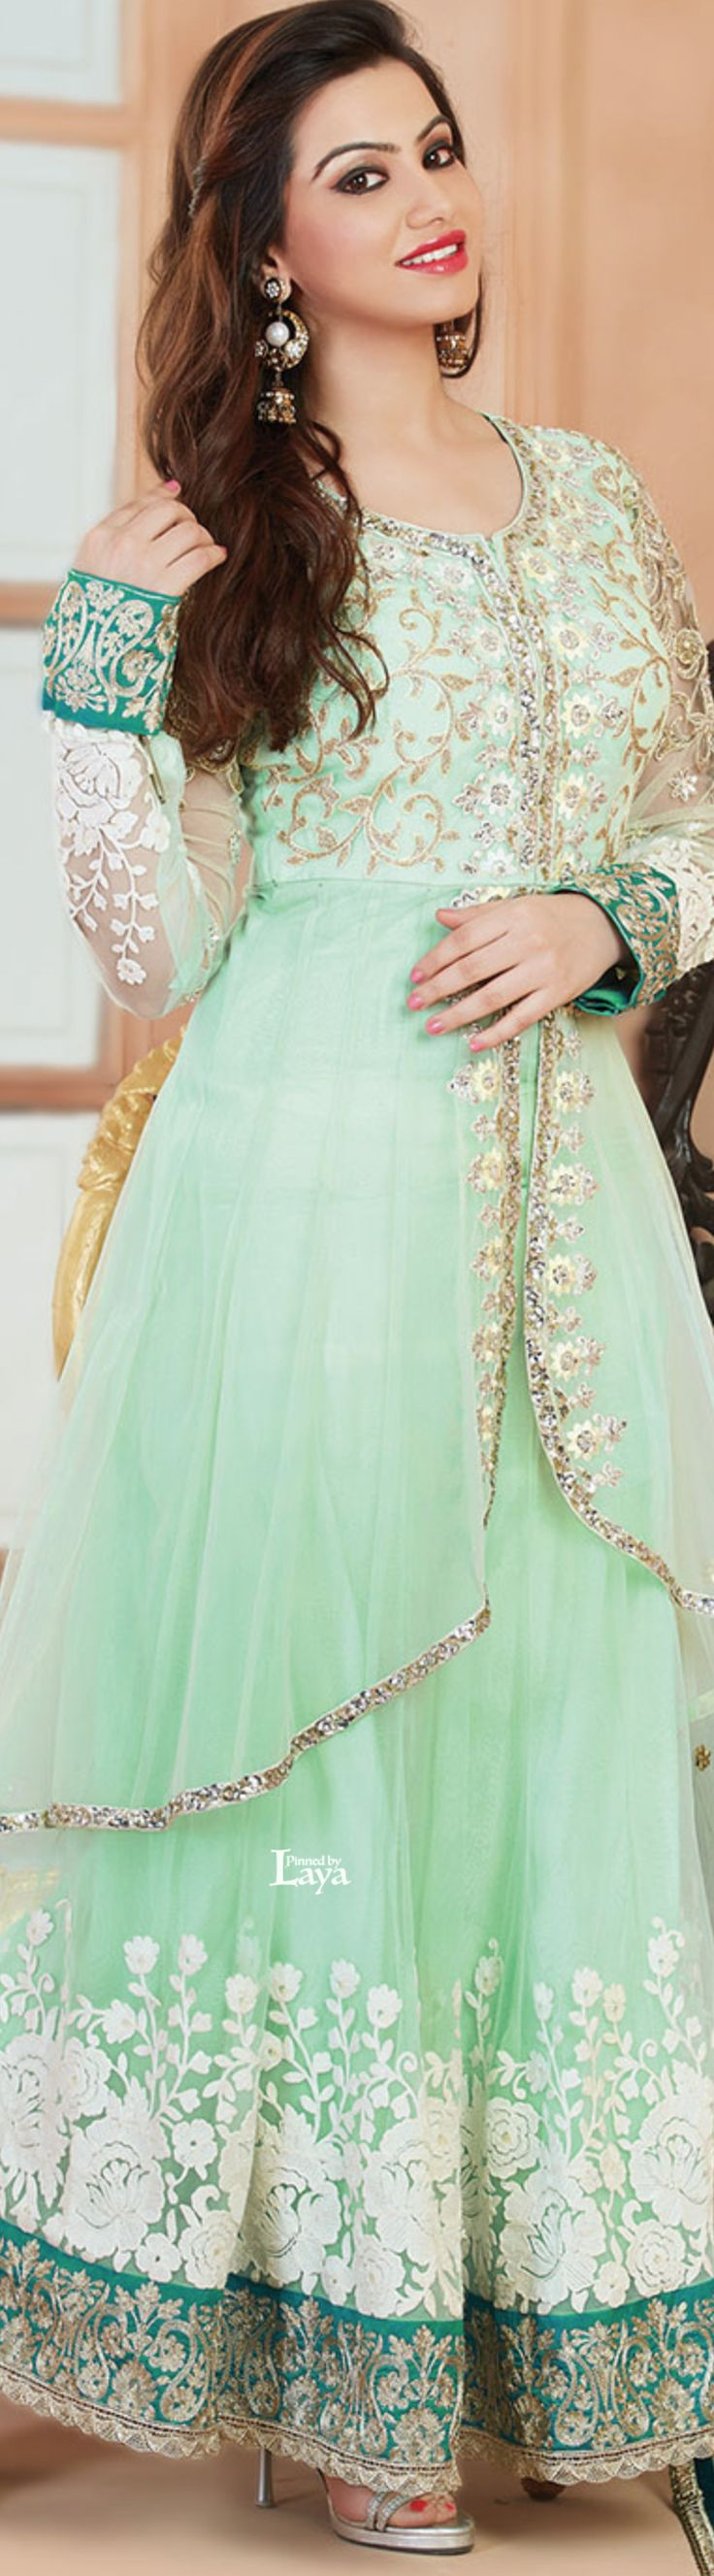 best vestido images on pinterest party outfits evening gowns